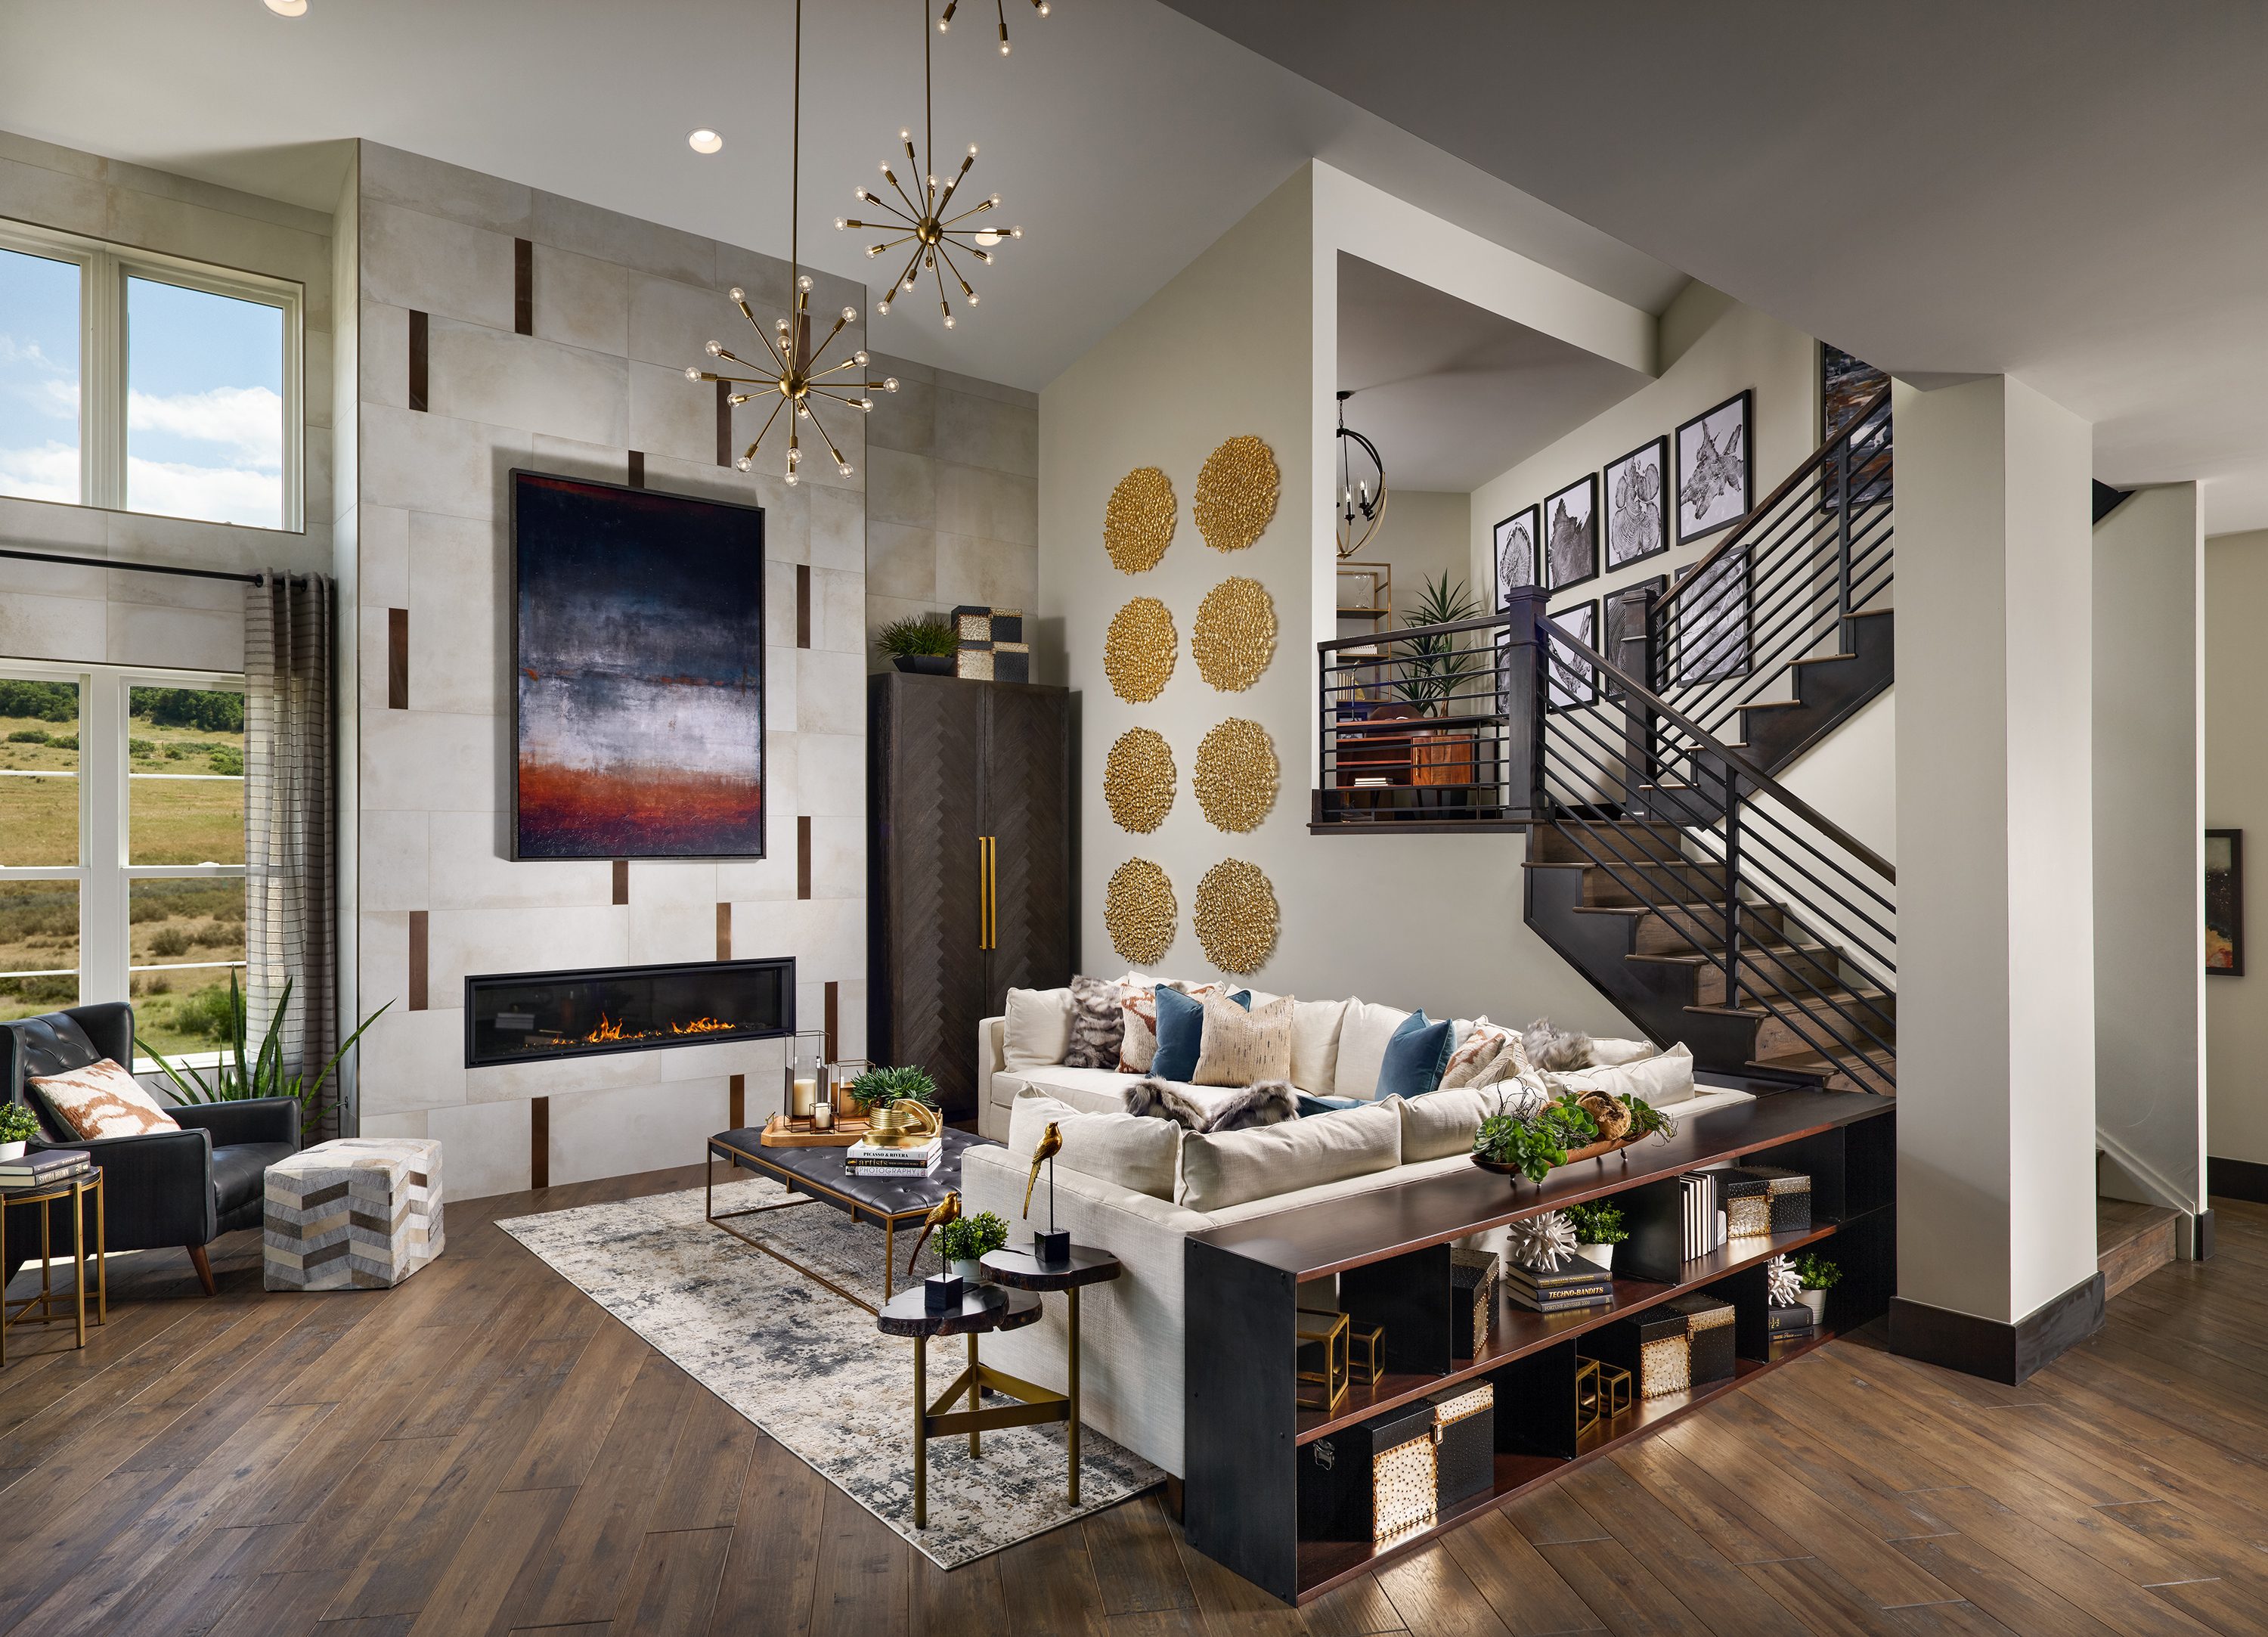 Stunning, award-winning living room design by Godden Sudik Architects with soaring double-height ceiling, lofted study space, and modern linear fireplace